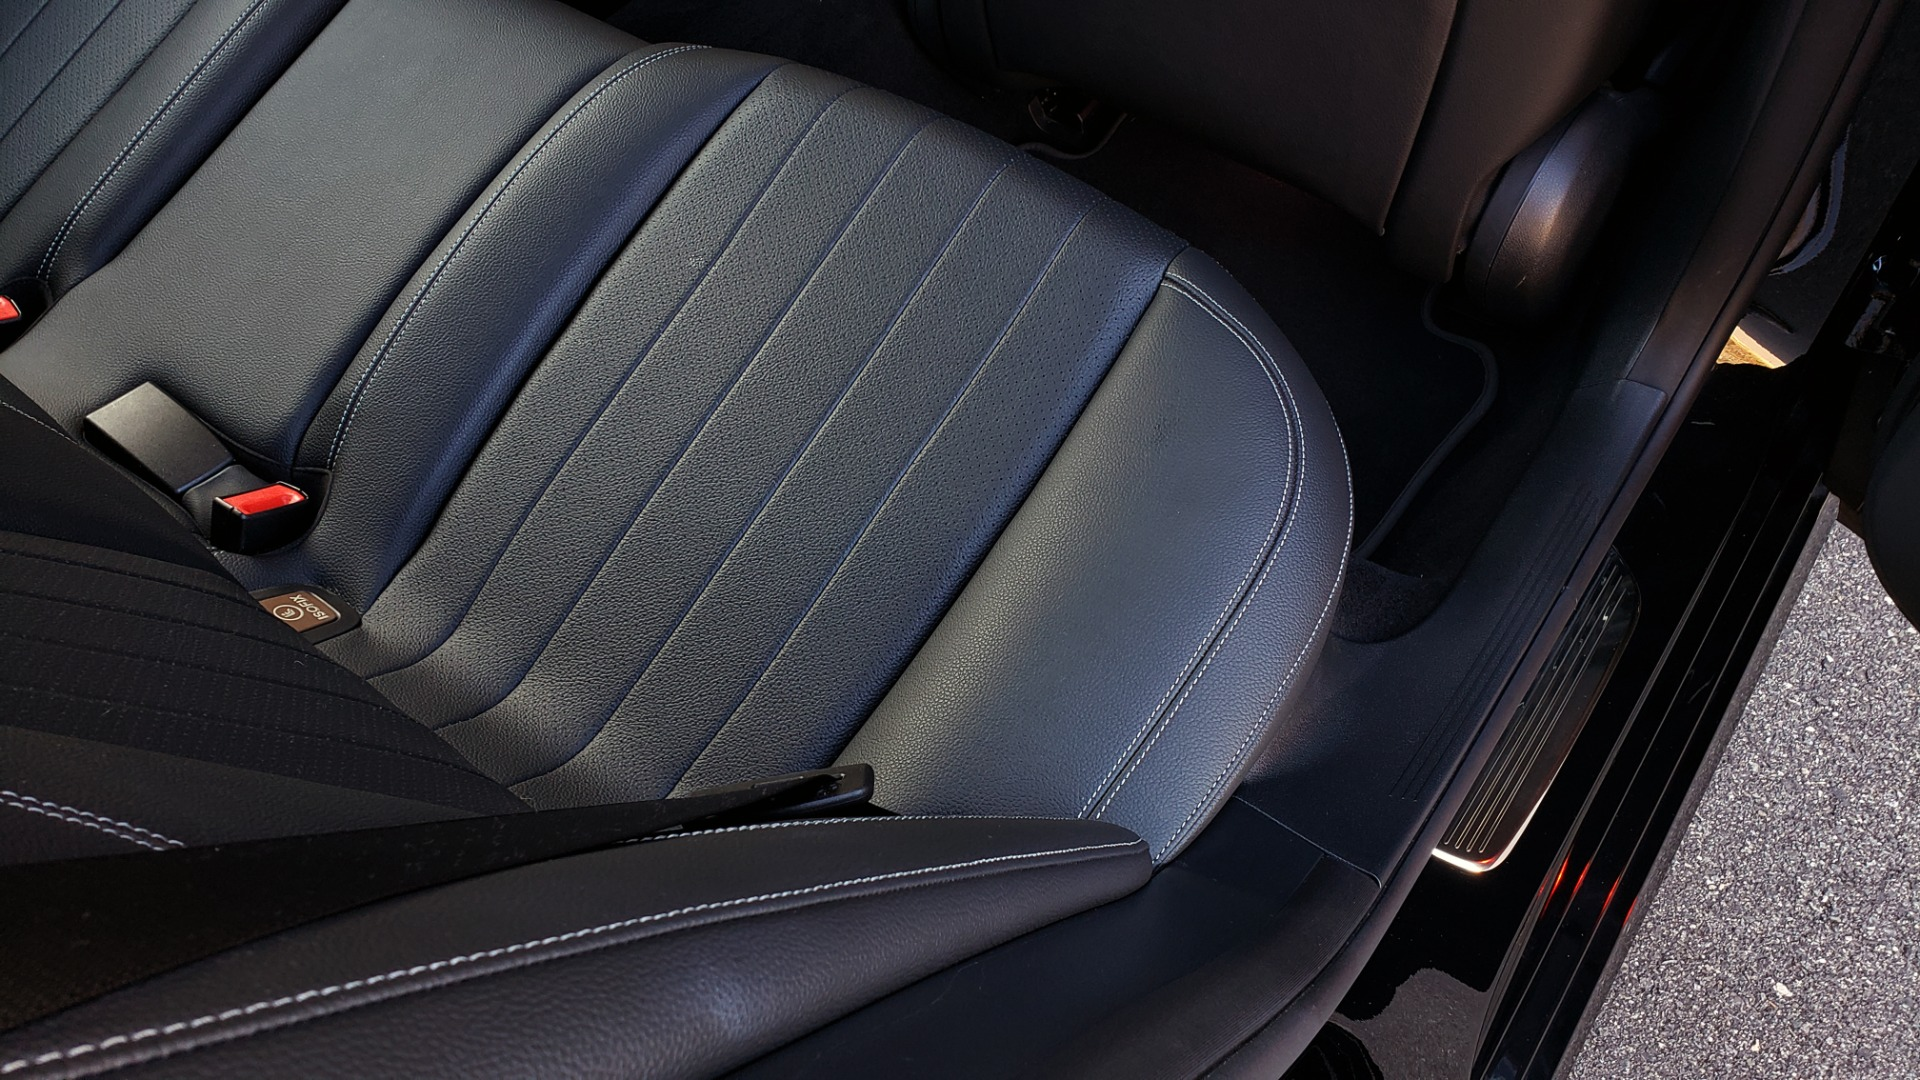 Used 2017 Mercedes-Benz E-CLASS E 300 PREMIUM / NAV / SUNROOF / BURMESTER / HTD STS / REARVIEW for sale $29,995 at Formula Imports in Charlotte NC 28227 72